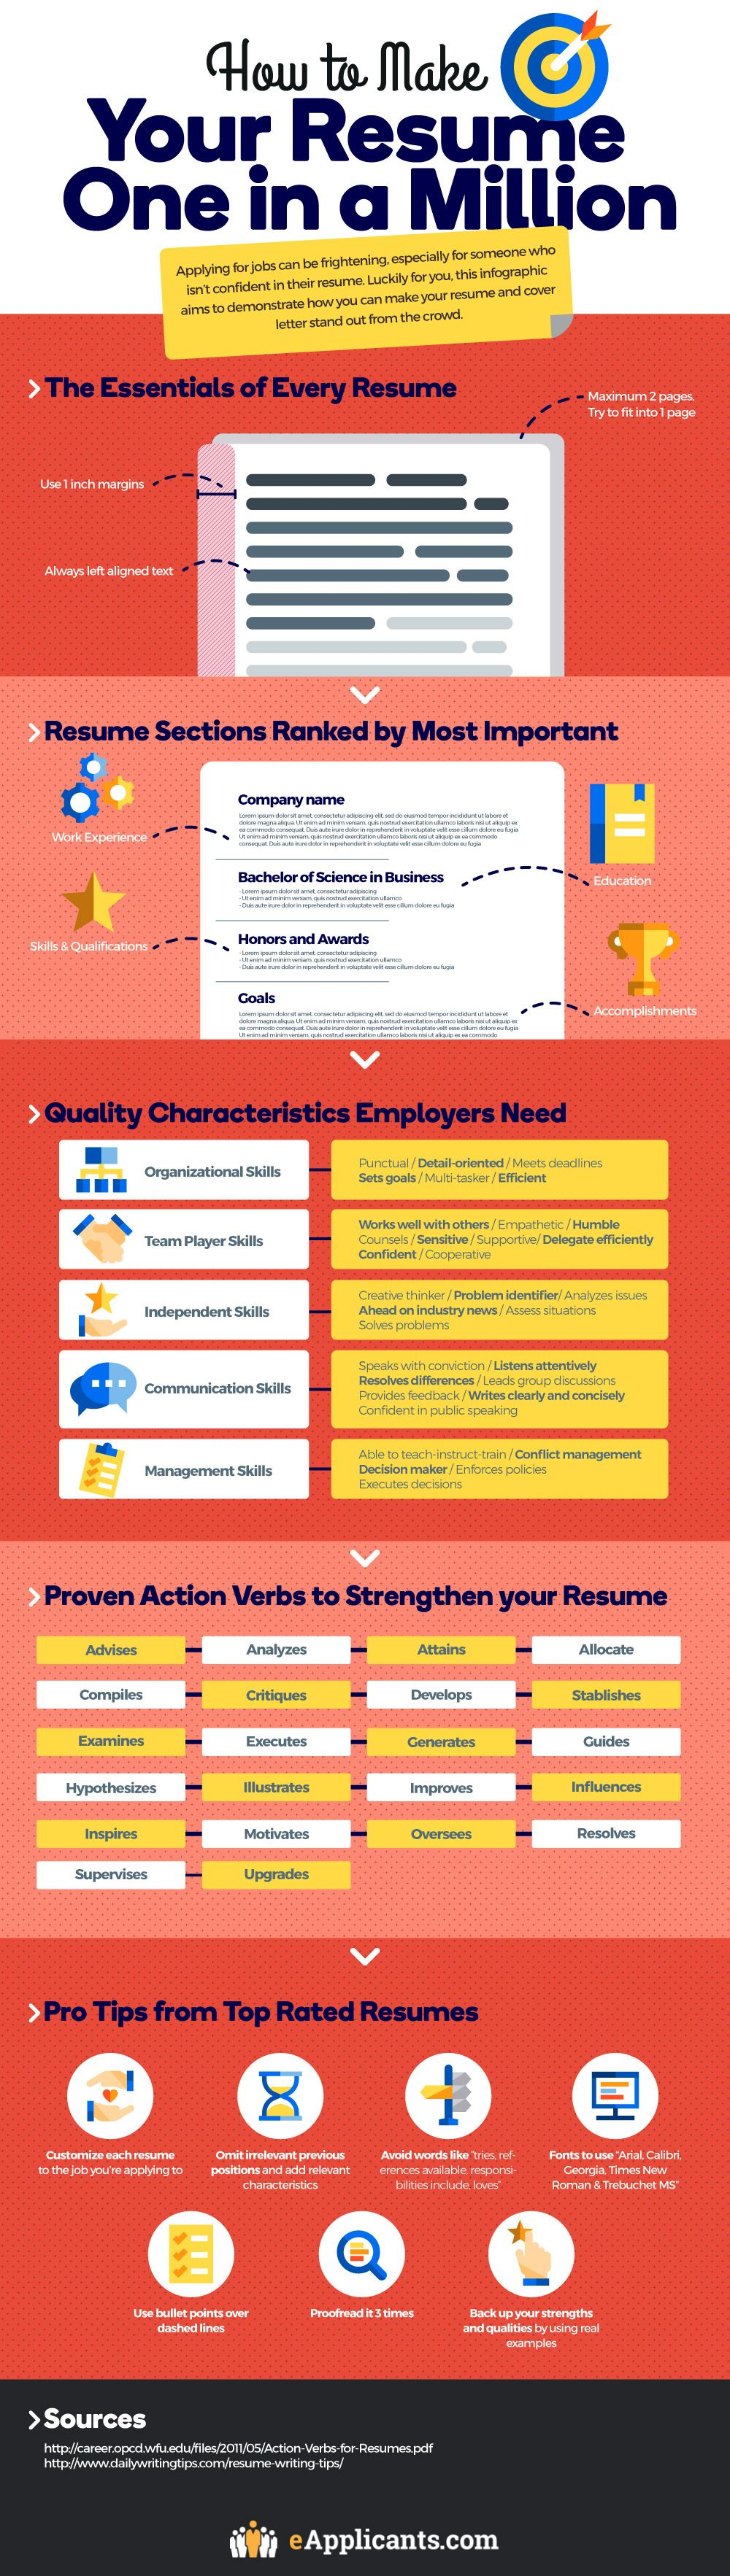 22 Action Words That Will Give Your Resume Added Punch [Infographic ...